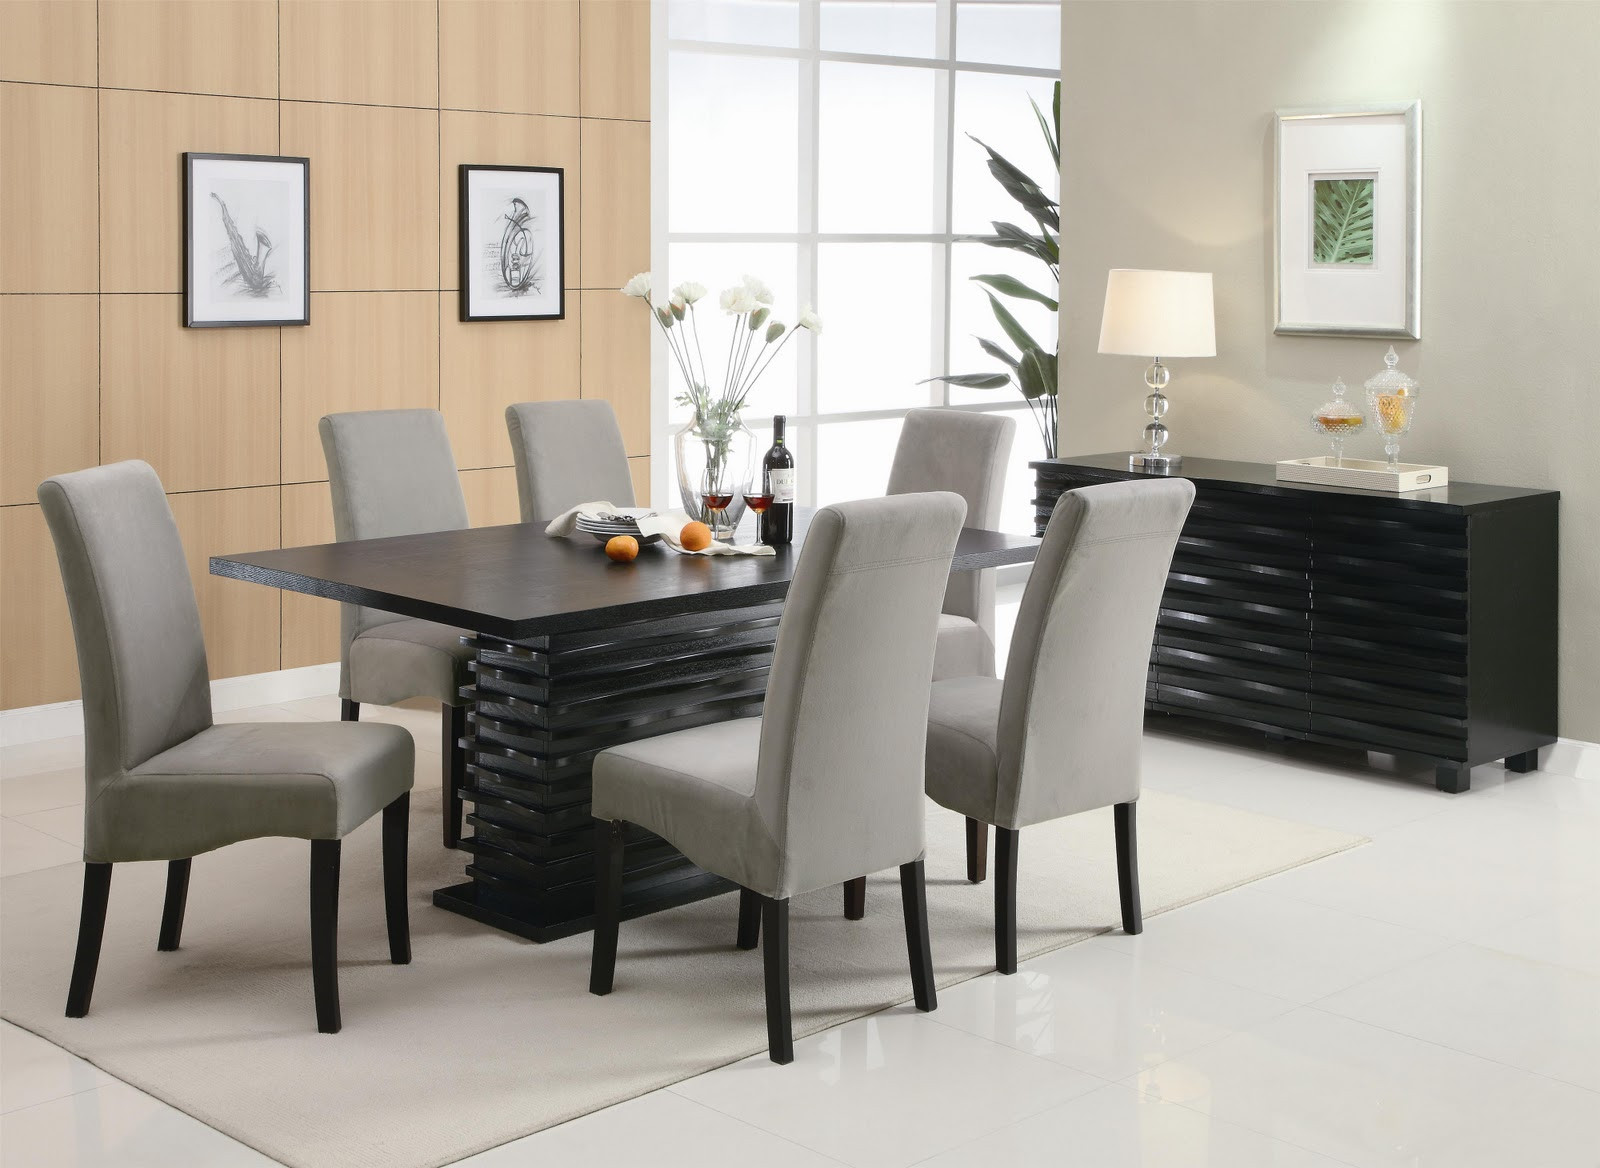 Best ideas about Dining Room Tables . Save or Pin Dining Room Now.